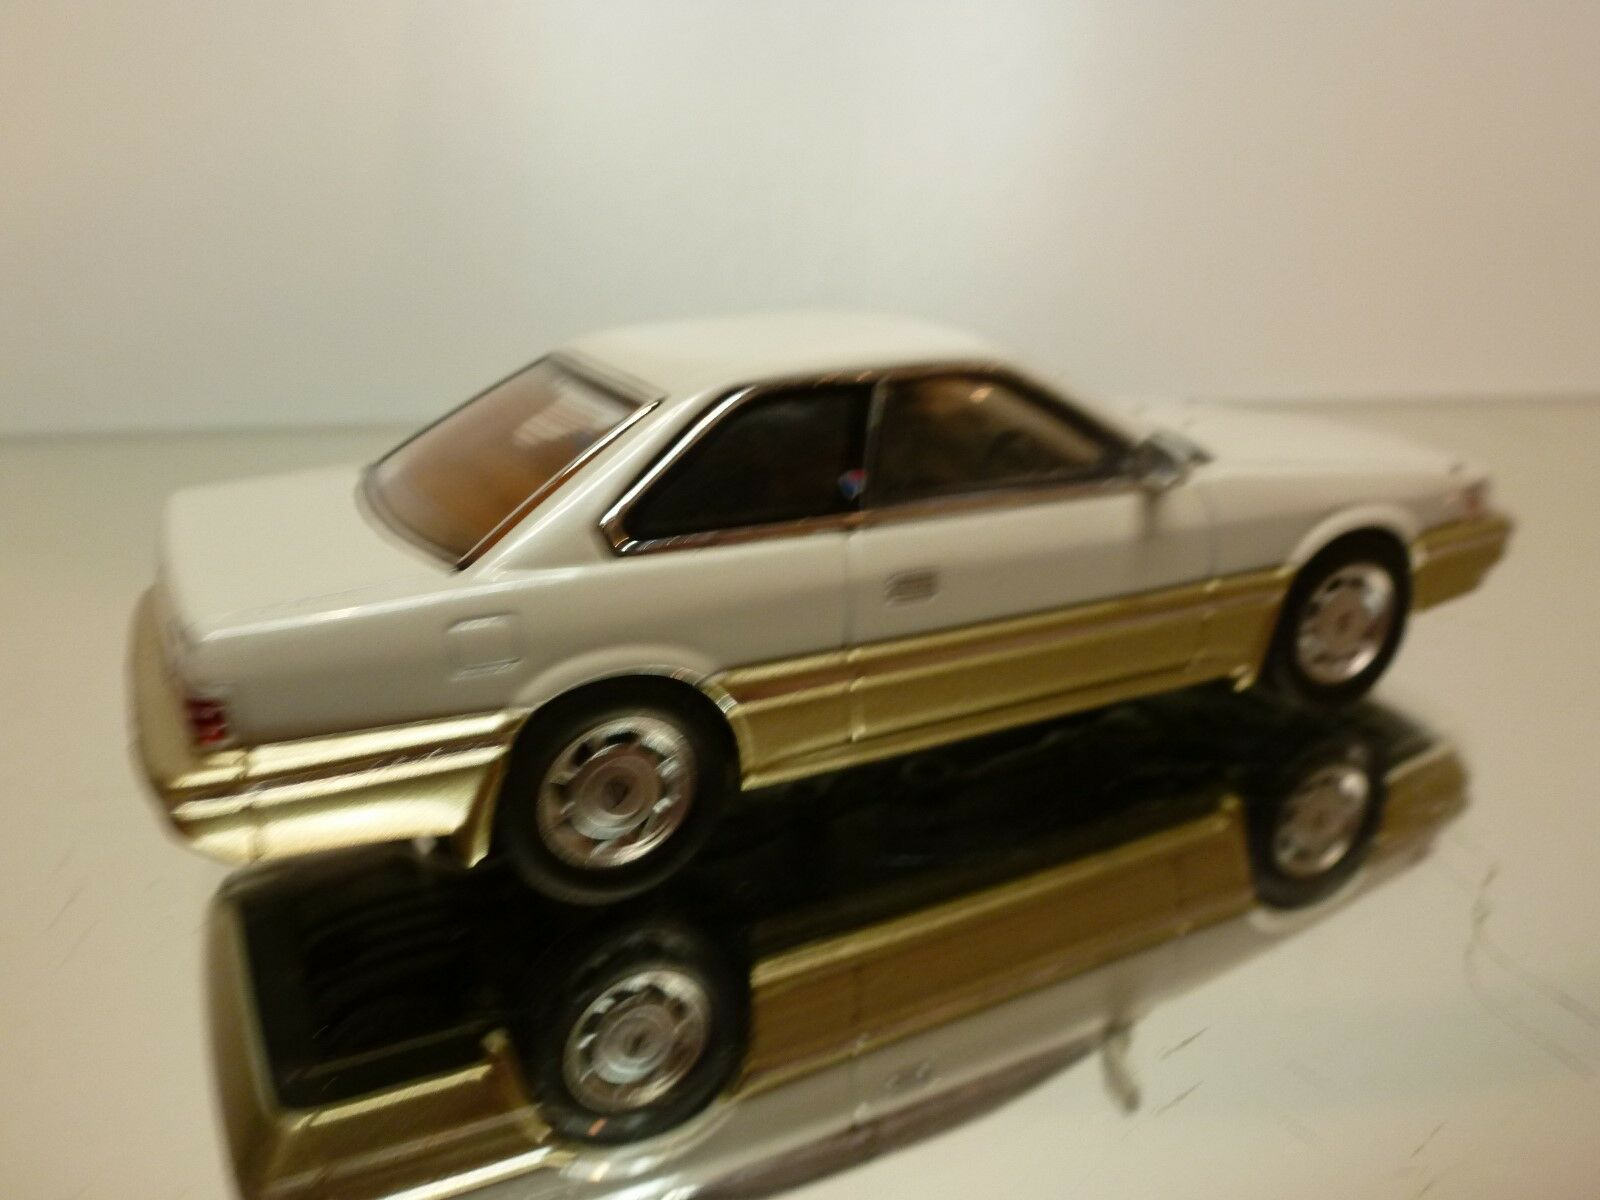 DIE CAST - NISSAN LEOPARD - EXTREMELY EXTREMELY EXTREMELY RARE VERSION   -  1 43 - EXCELLENT - 30 31 5fa084